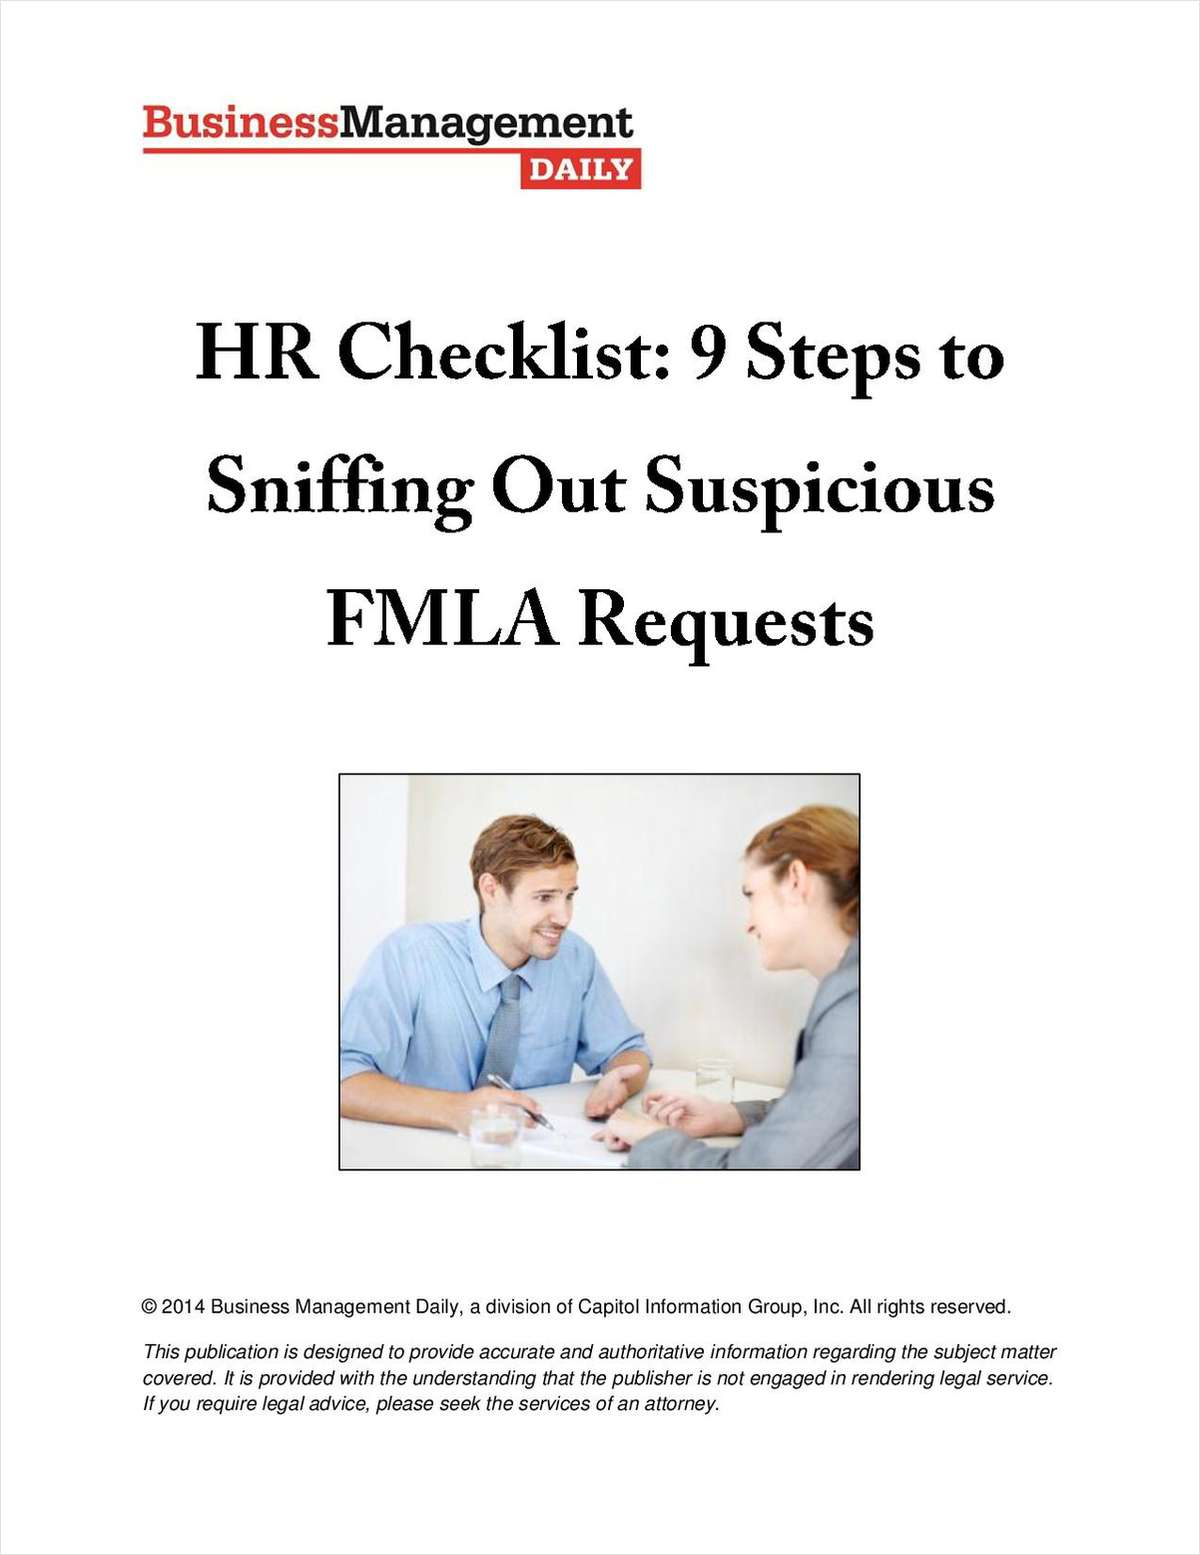 HR Checklist: 9 Steps to Sniffing Out Suspicious FMLA Requests